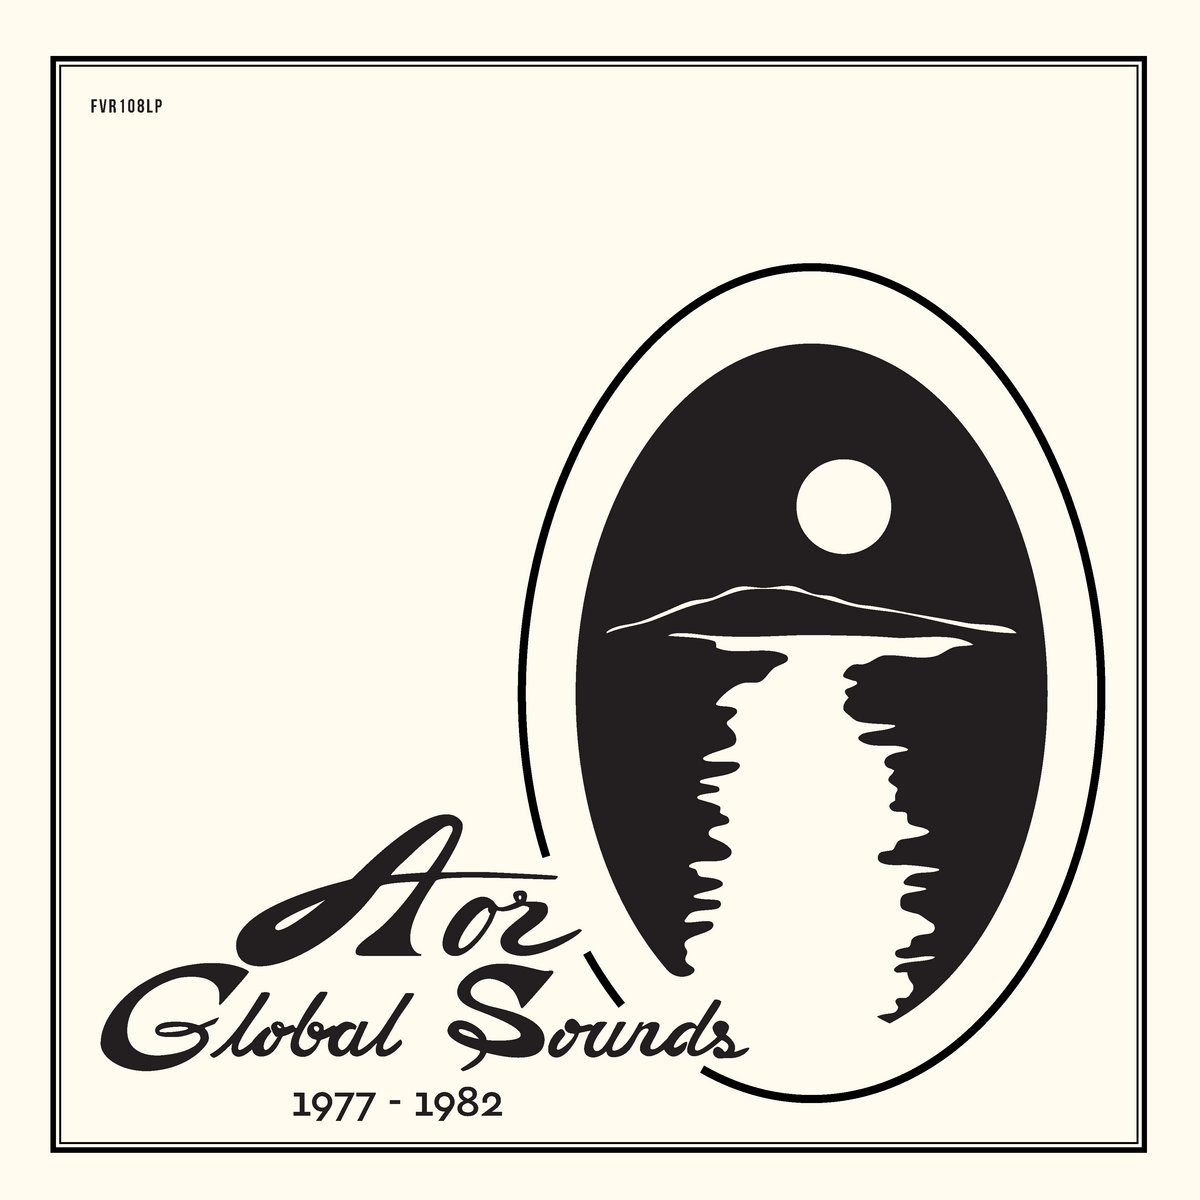 aor global sounds 1977 1982 selected by charles maurice